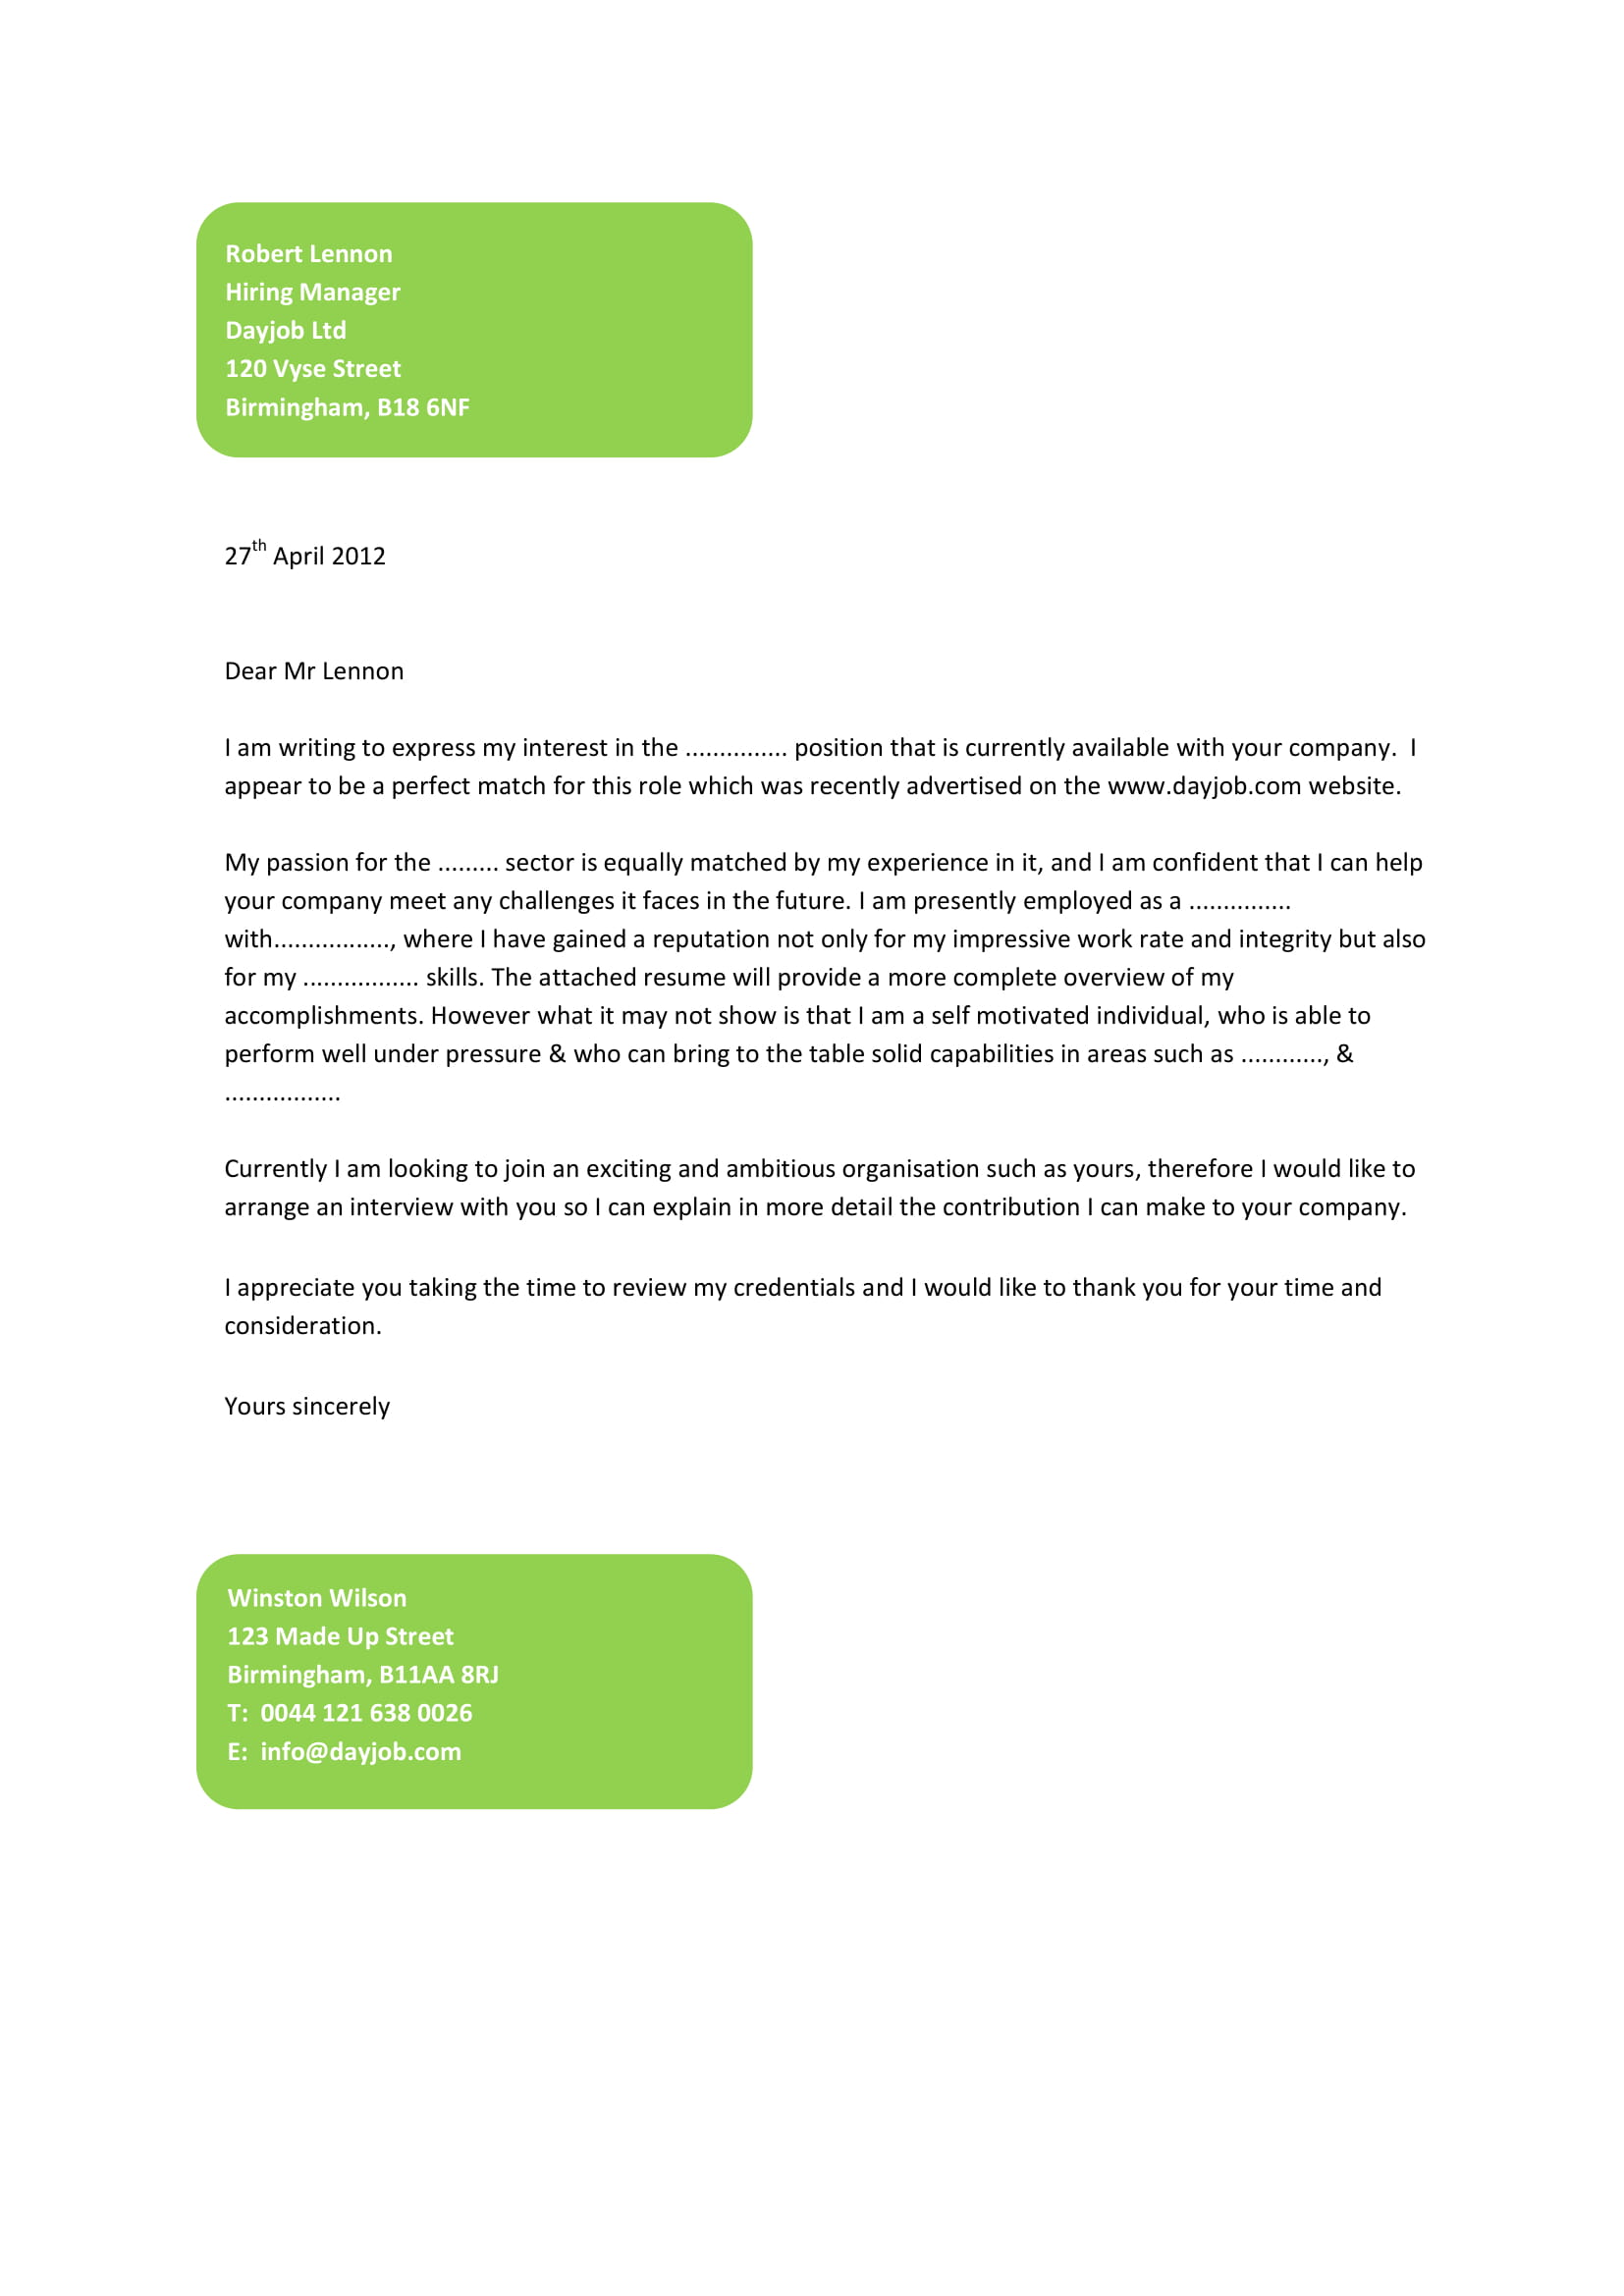 job application cover letter template example